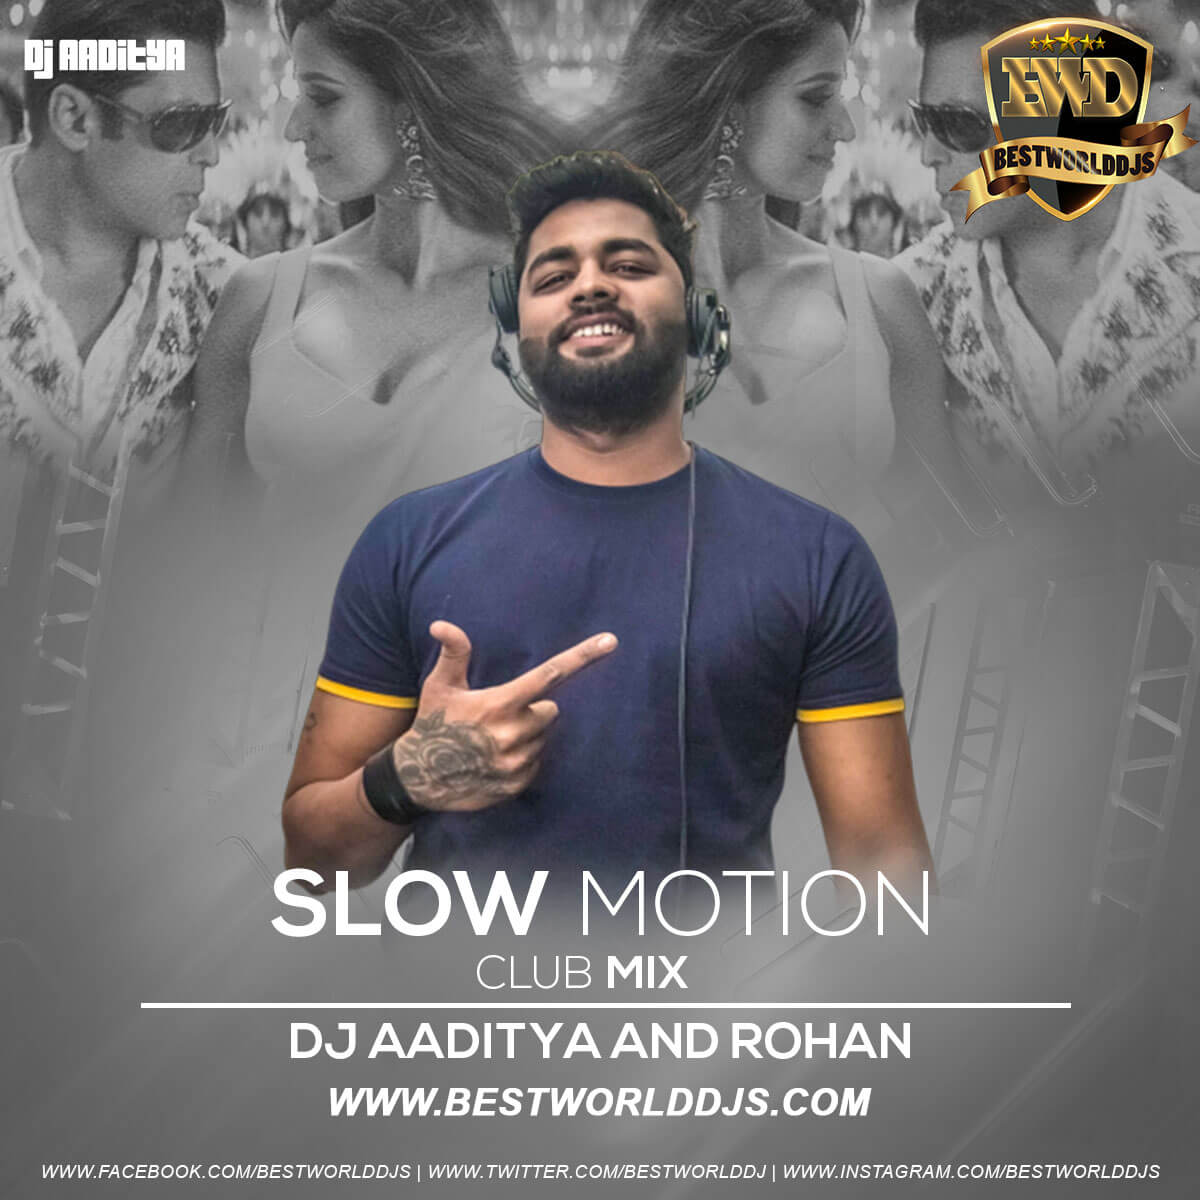 Slow Motion Club Mix DJ AADITYA DJ ROHAN